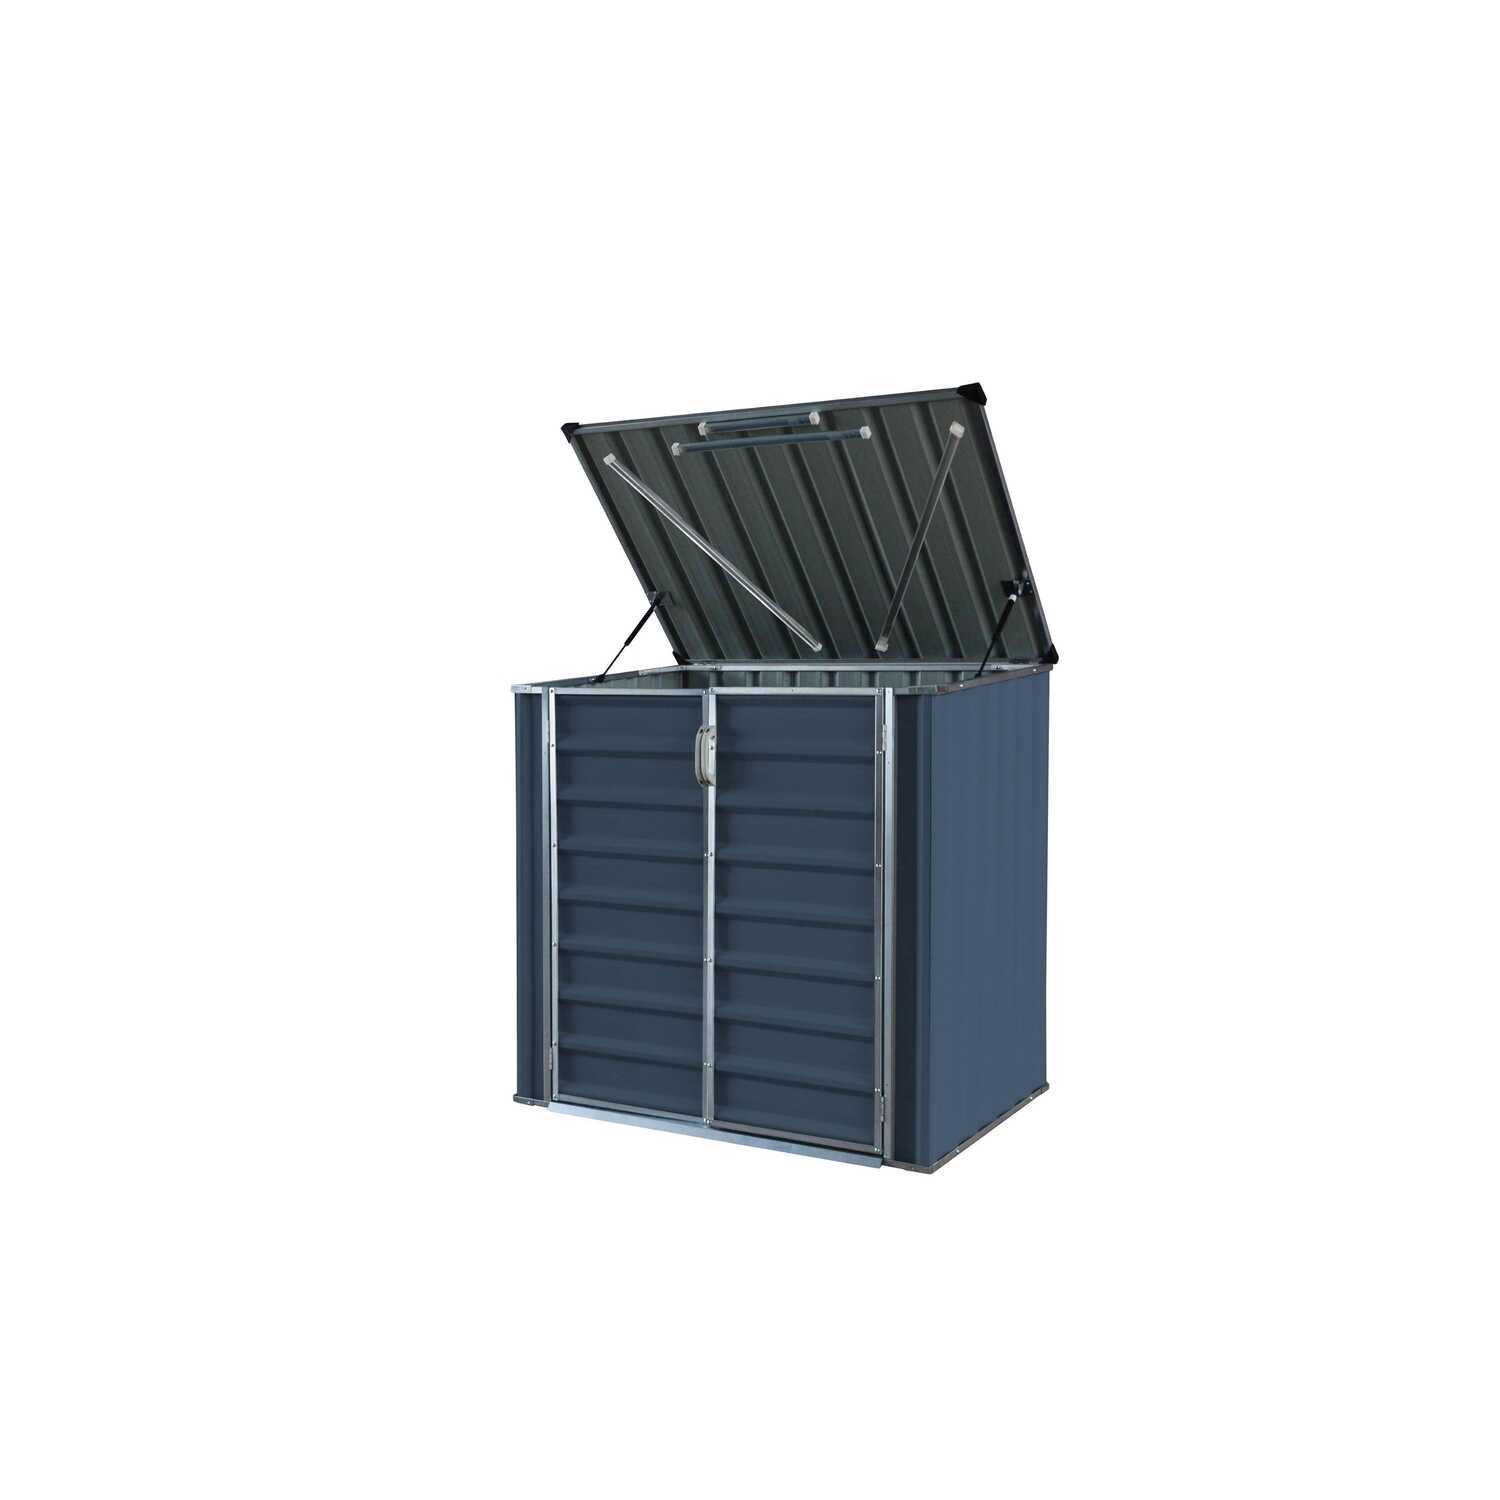 Build-Well  53 in. H x 57 in. W x 38.1 in. D Gray  Galvanized Steel  Storage Shed